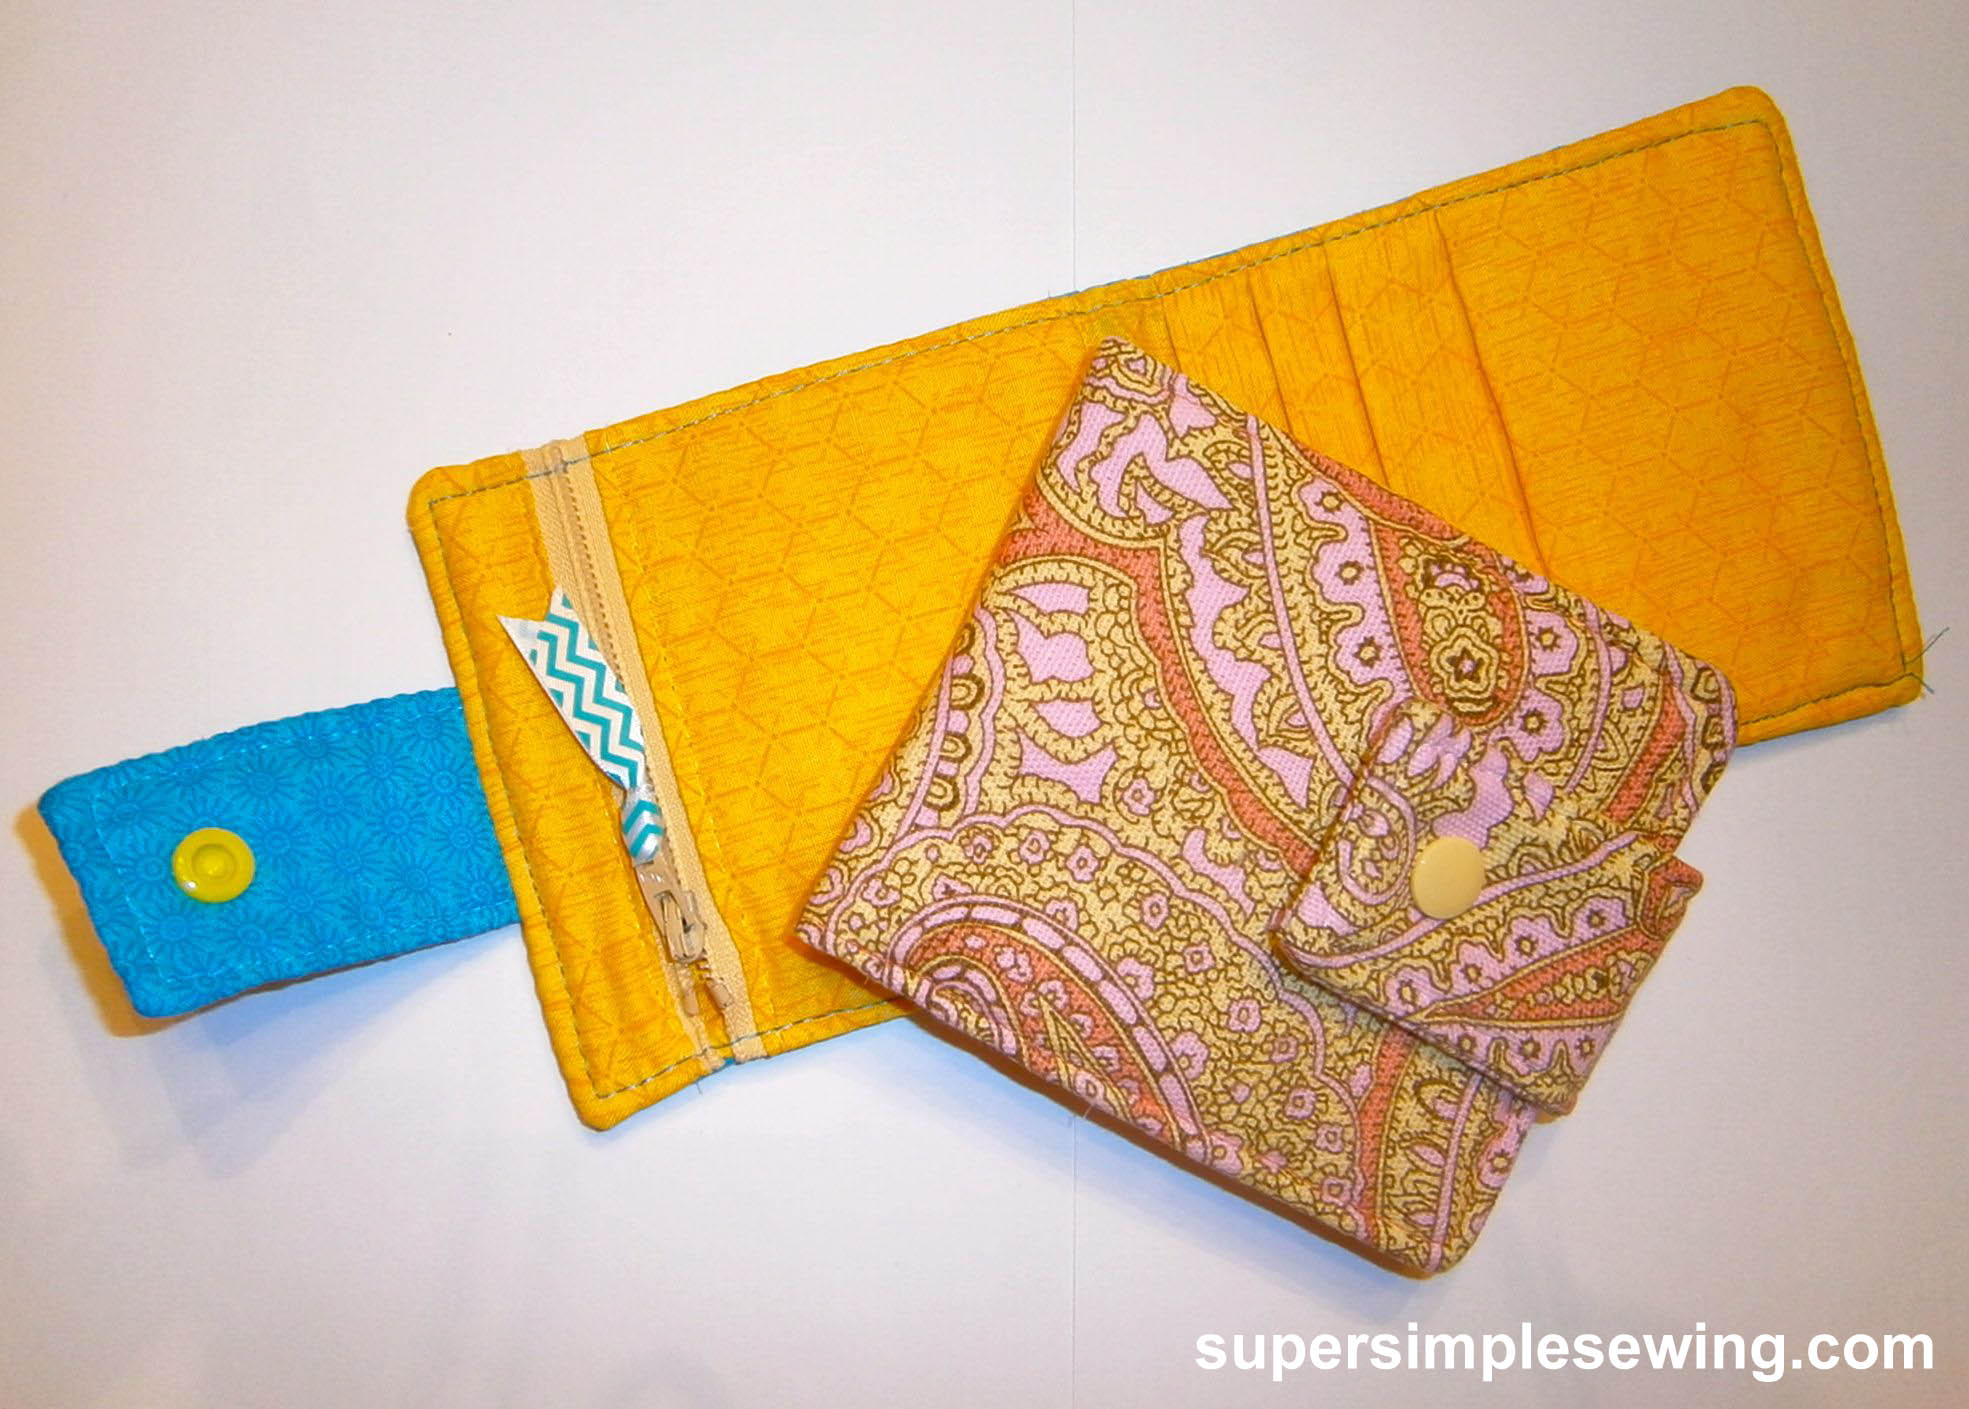 Free sewing pattern and tutorial wallet free sewing pattern and tutorial jeuxipadfo Choice Image